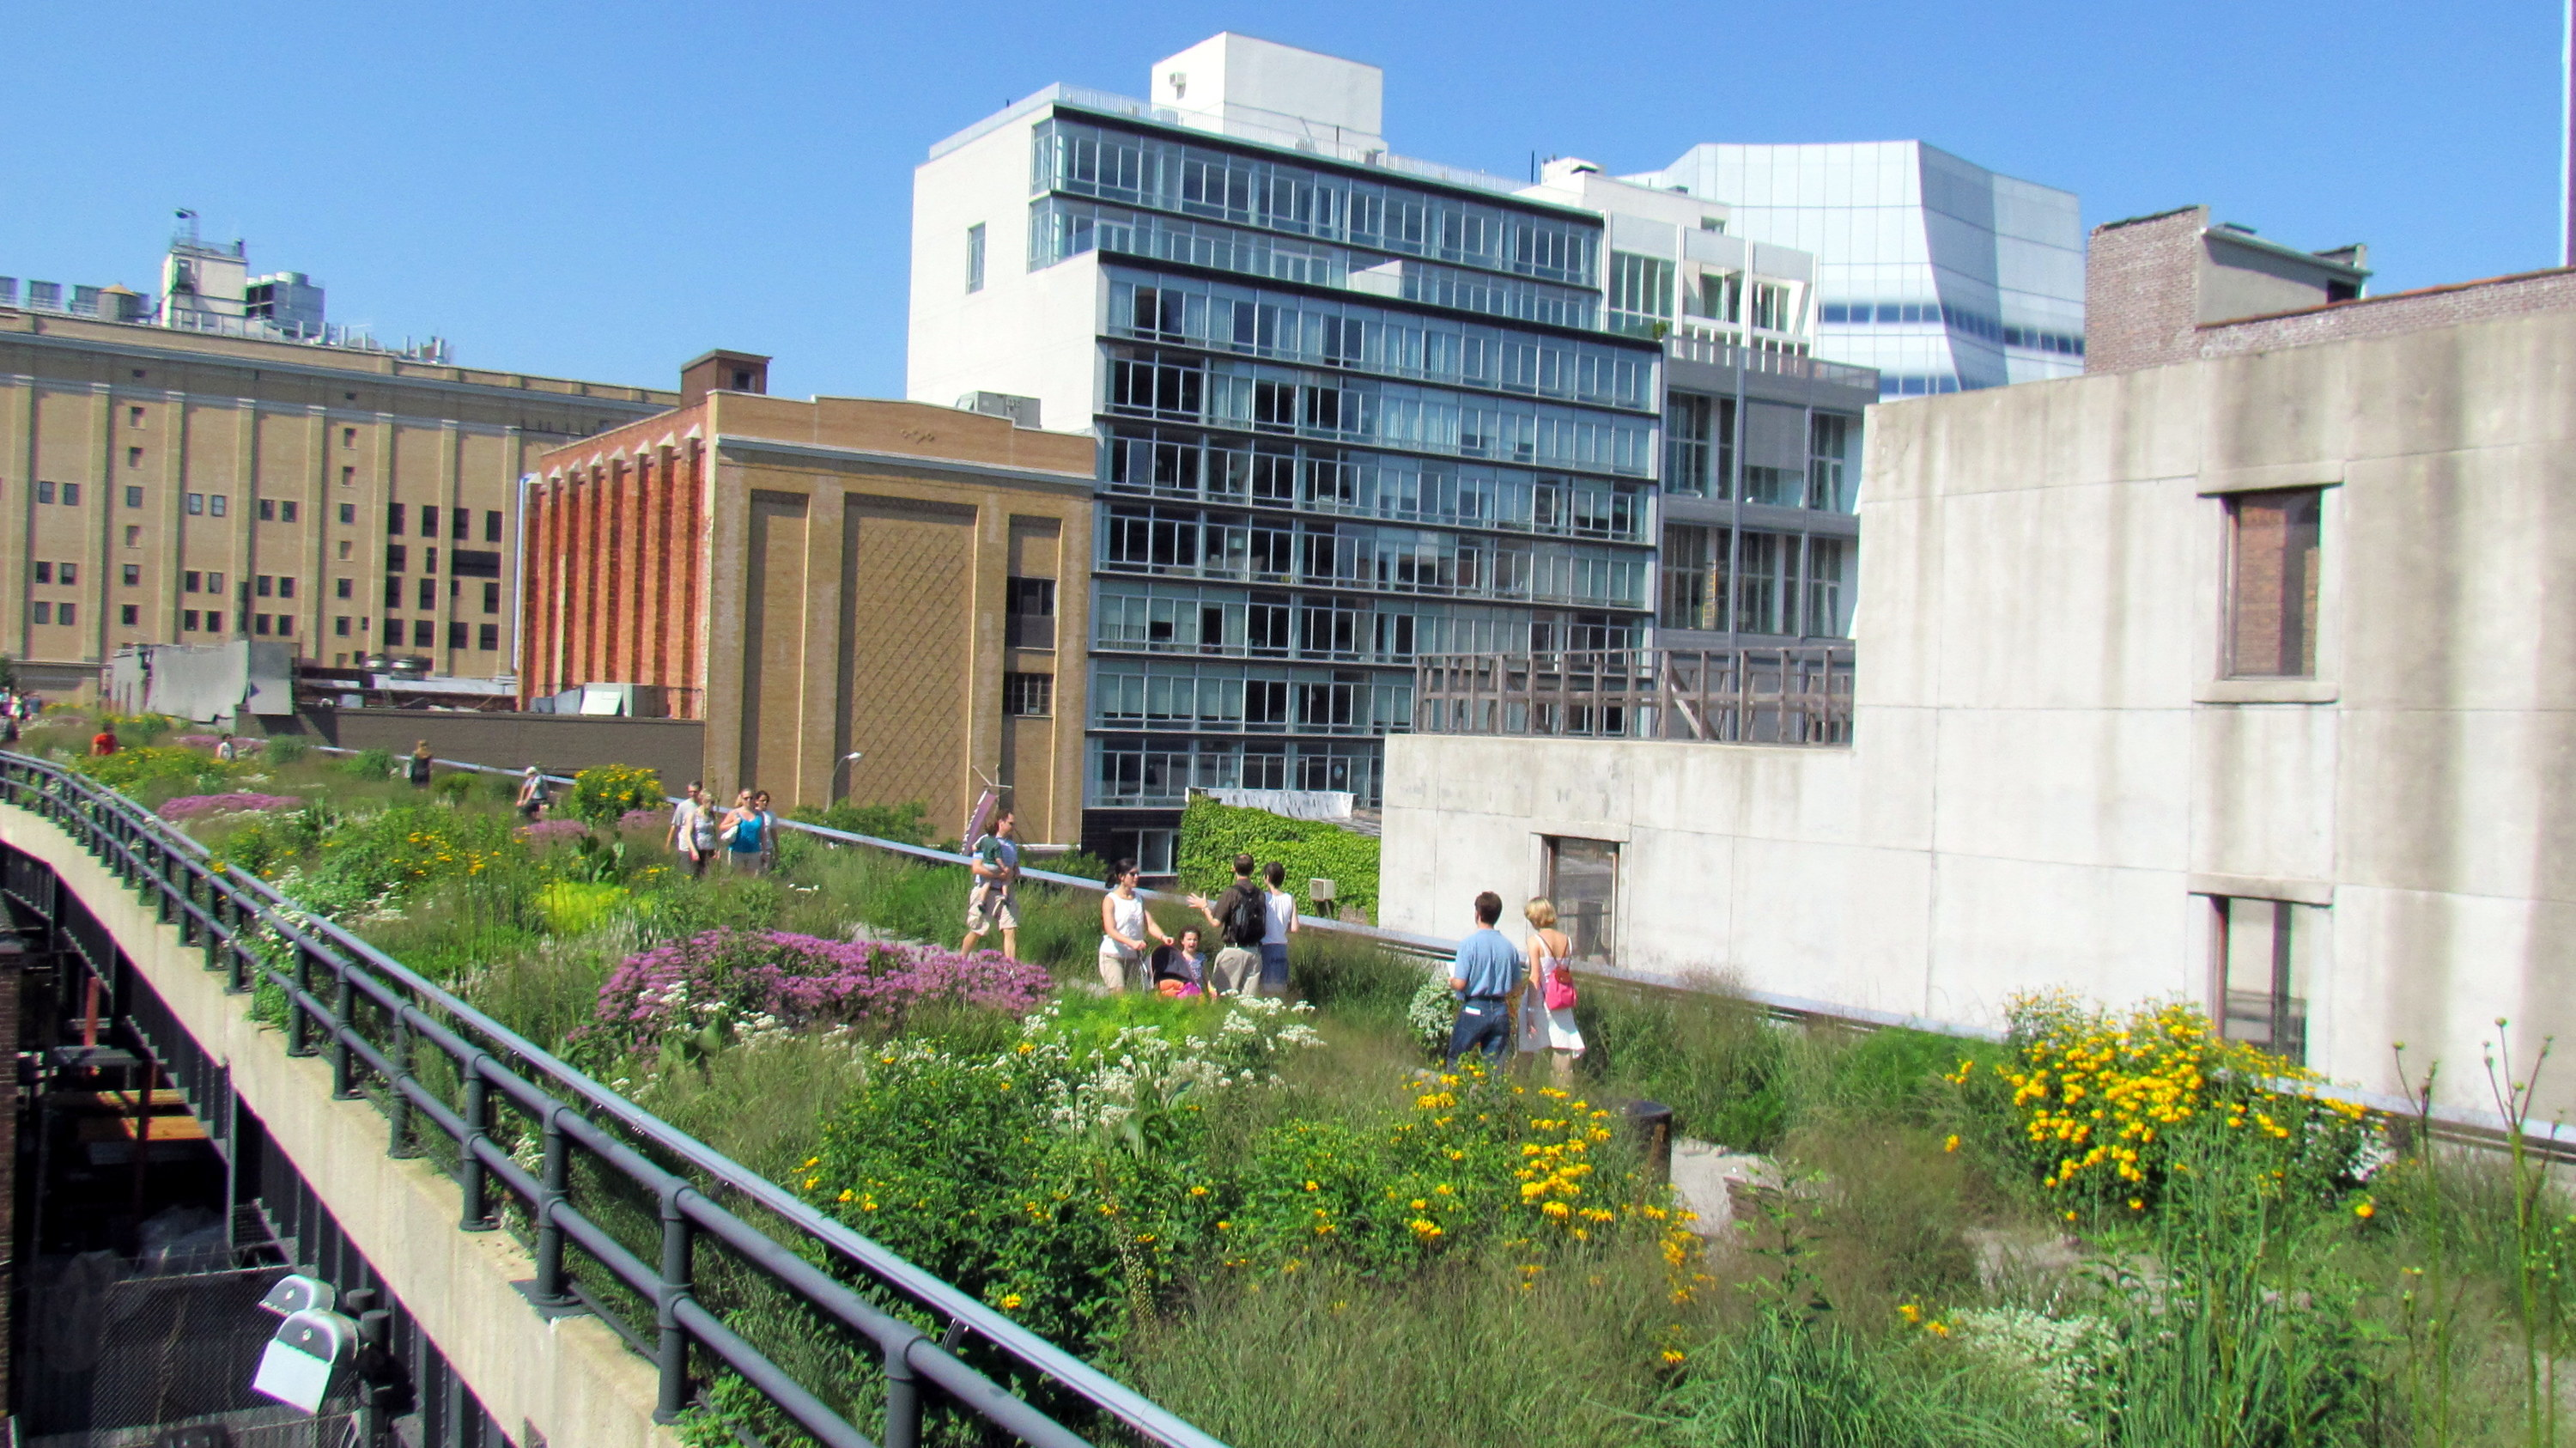 The highline photo